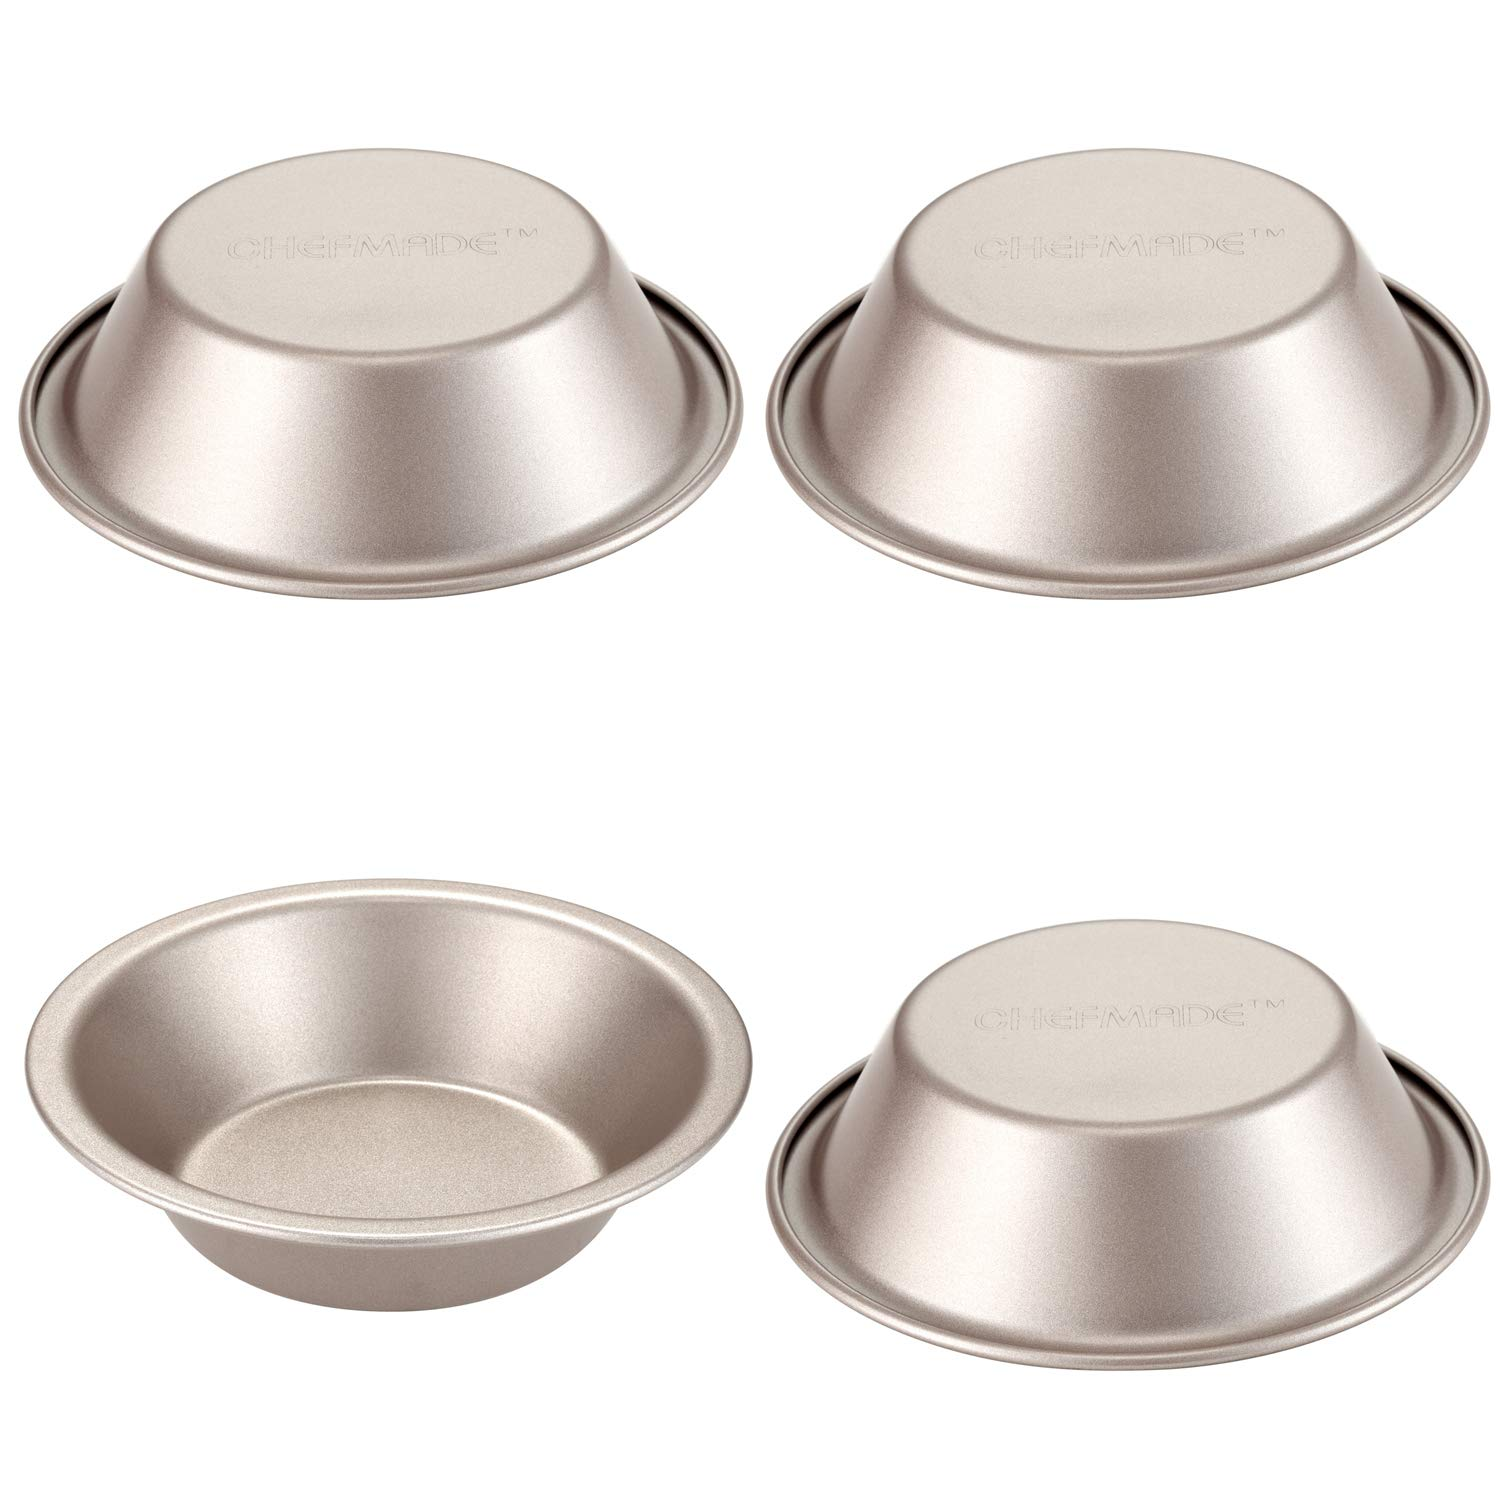 CHEFMADE Mini Round Pie Pan Set, 4PCS 5-Inch Non-stick Carbon Steel Tart Pan, FDA Approved for Oven Baking (Champagne Gold)